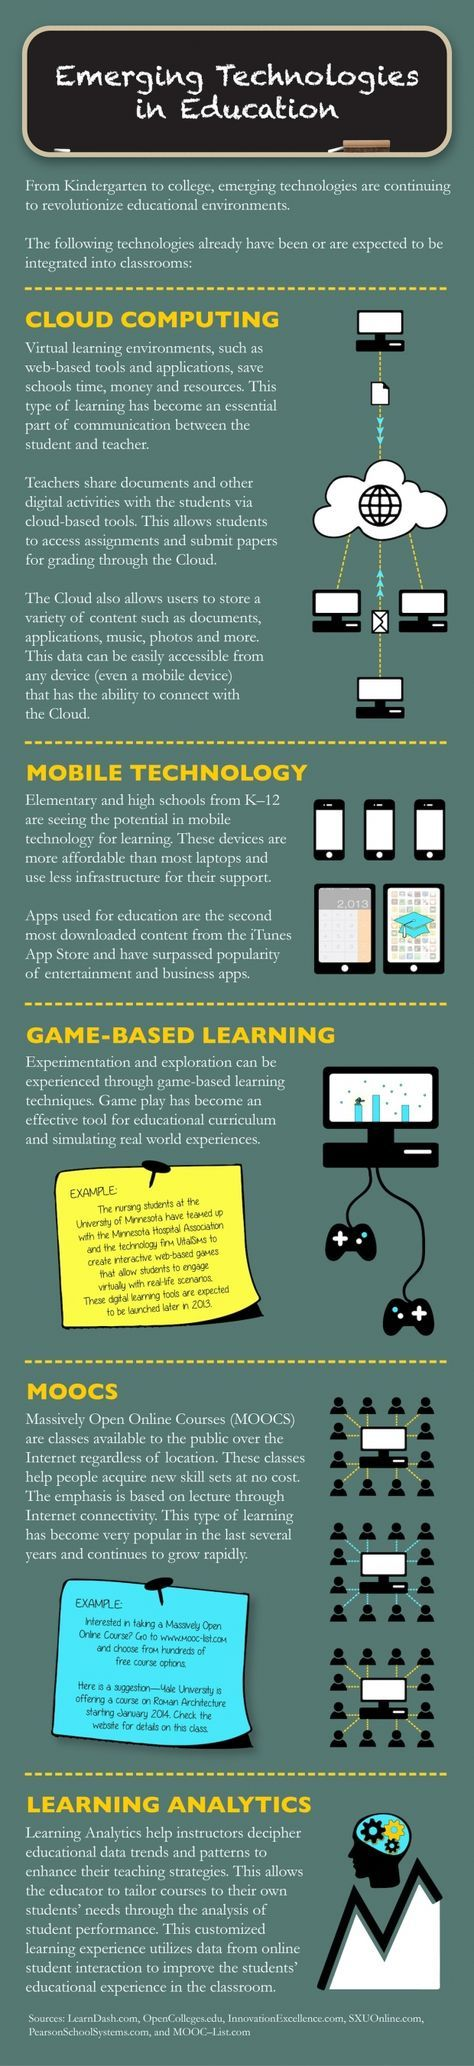 52 best Educational Technology images on Pinterest | Educational ...